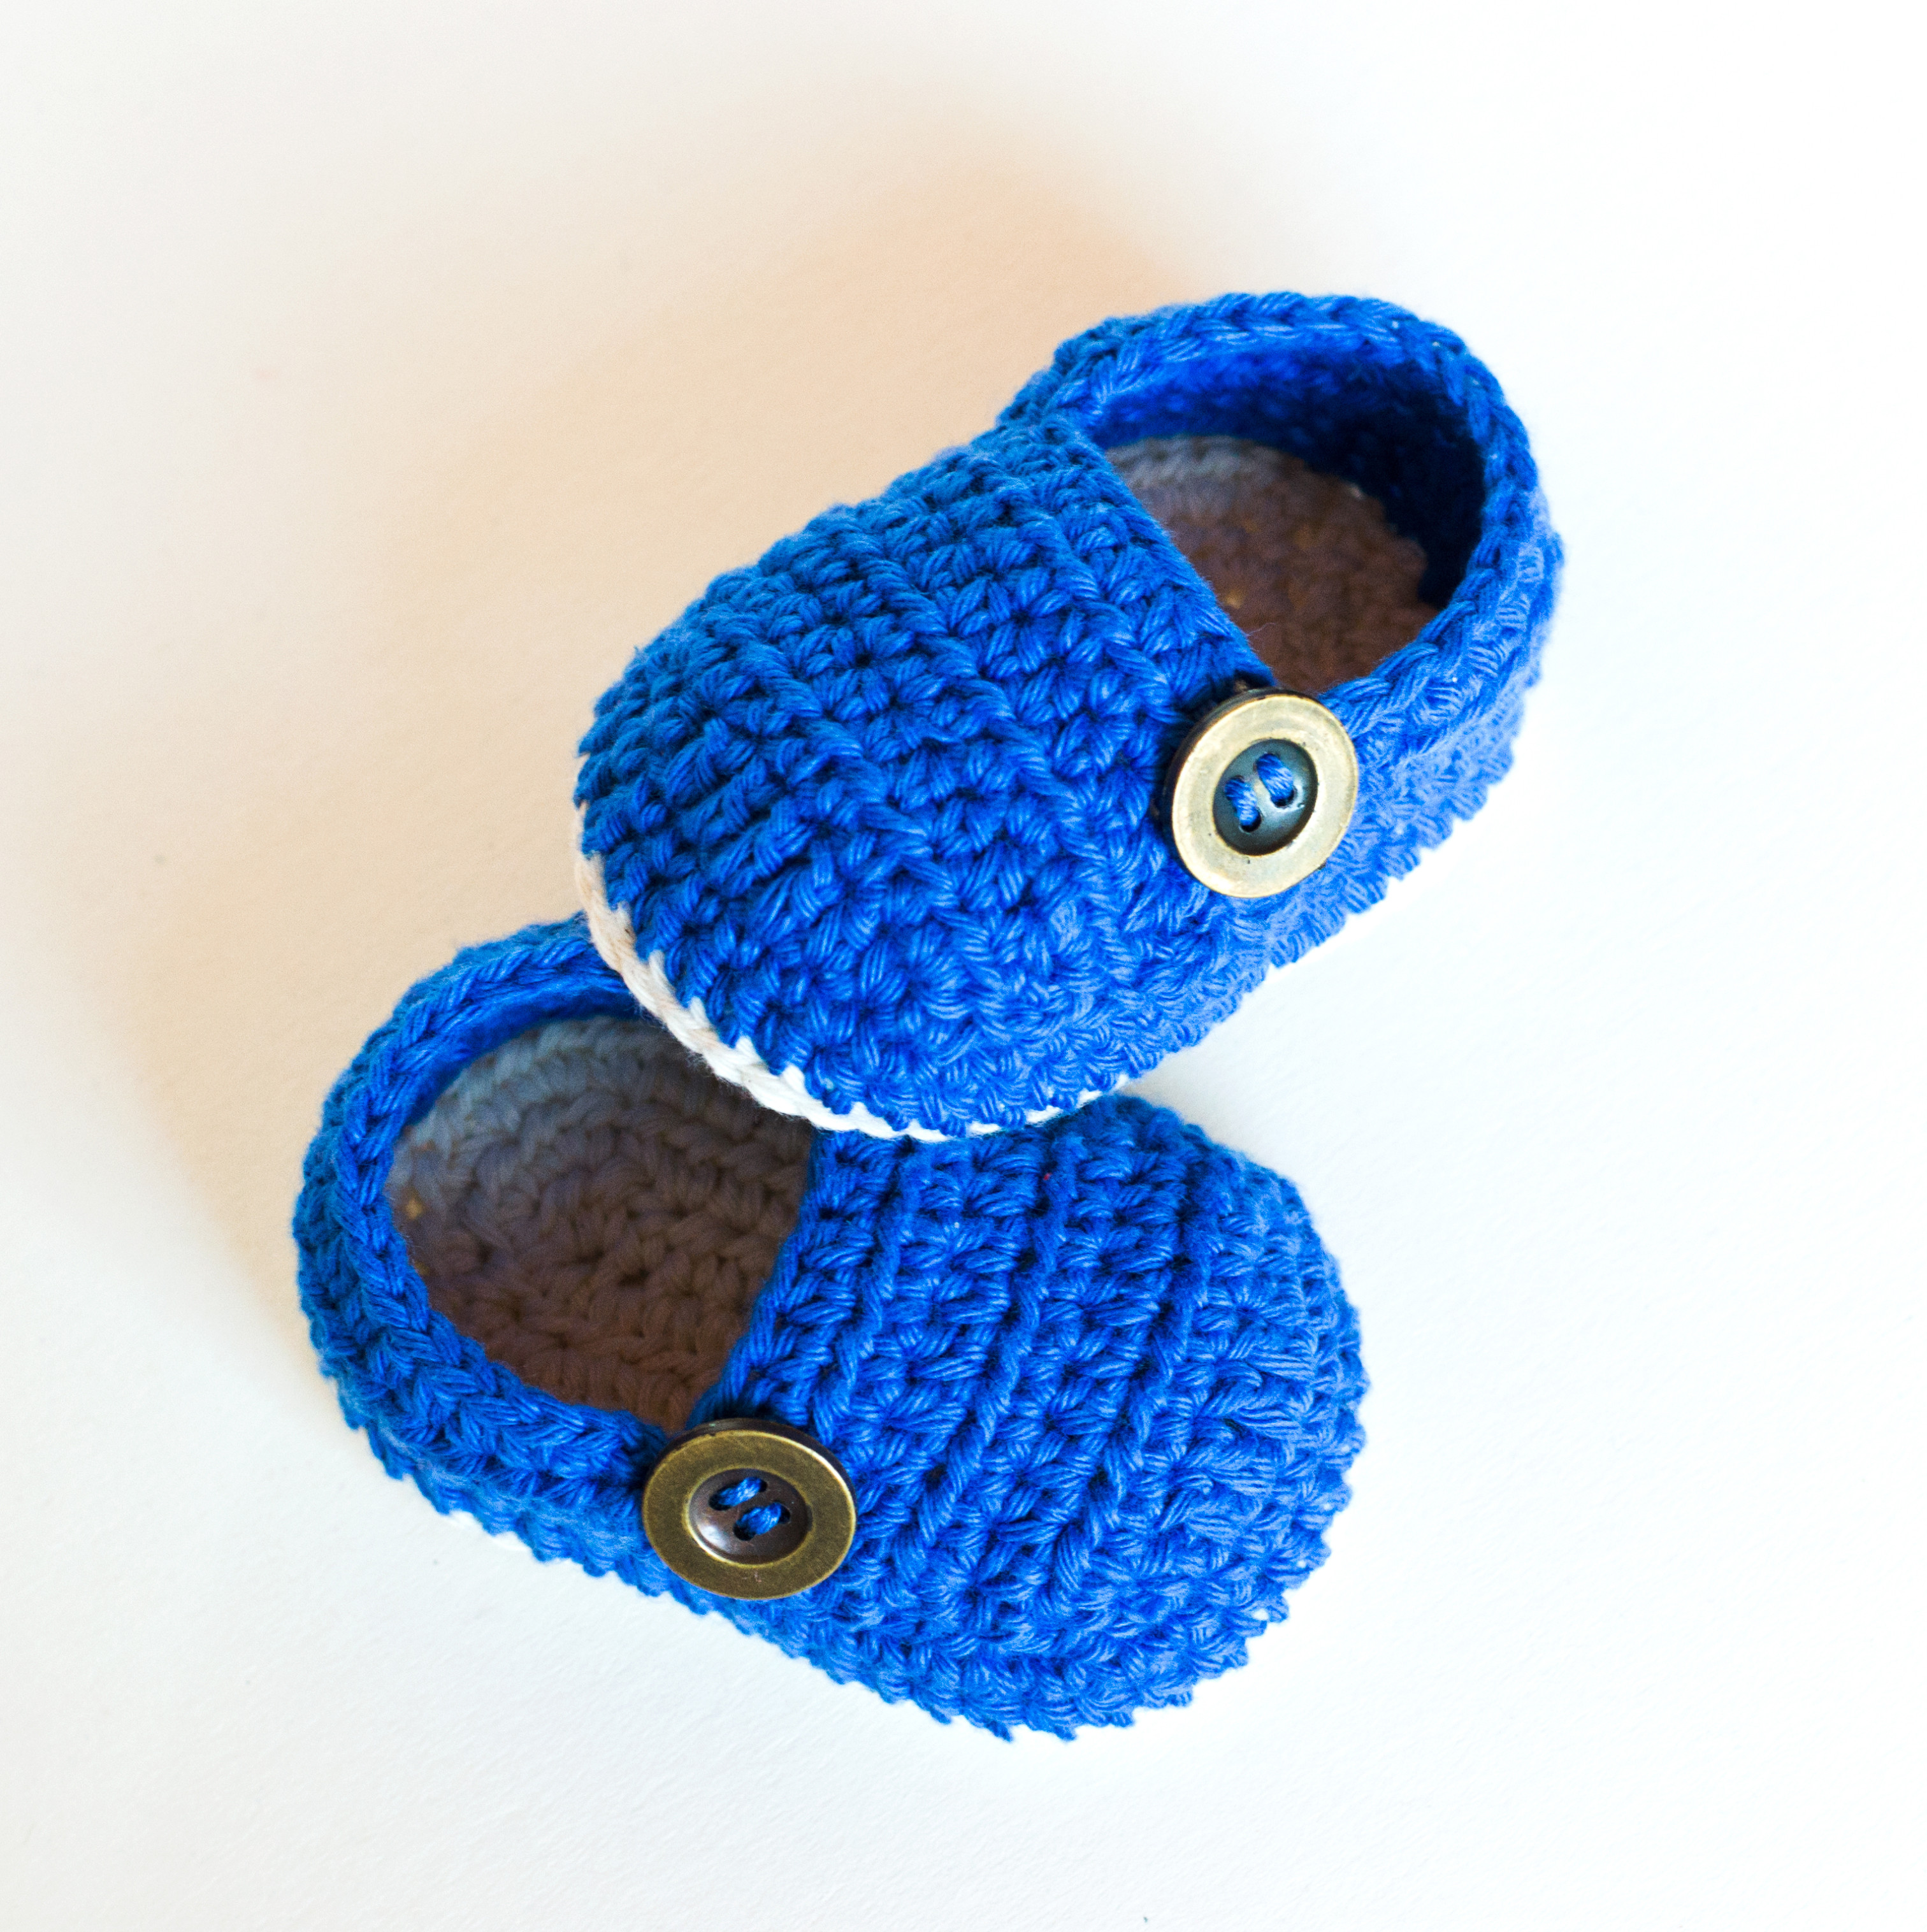 New Crochet Baby Booties – Grandpa Slippers – Croby Patterns Crochet Baby Slippers Of Marvelous 50 Images Crochet Baby Slippers